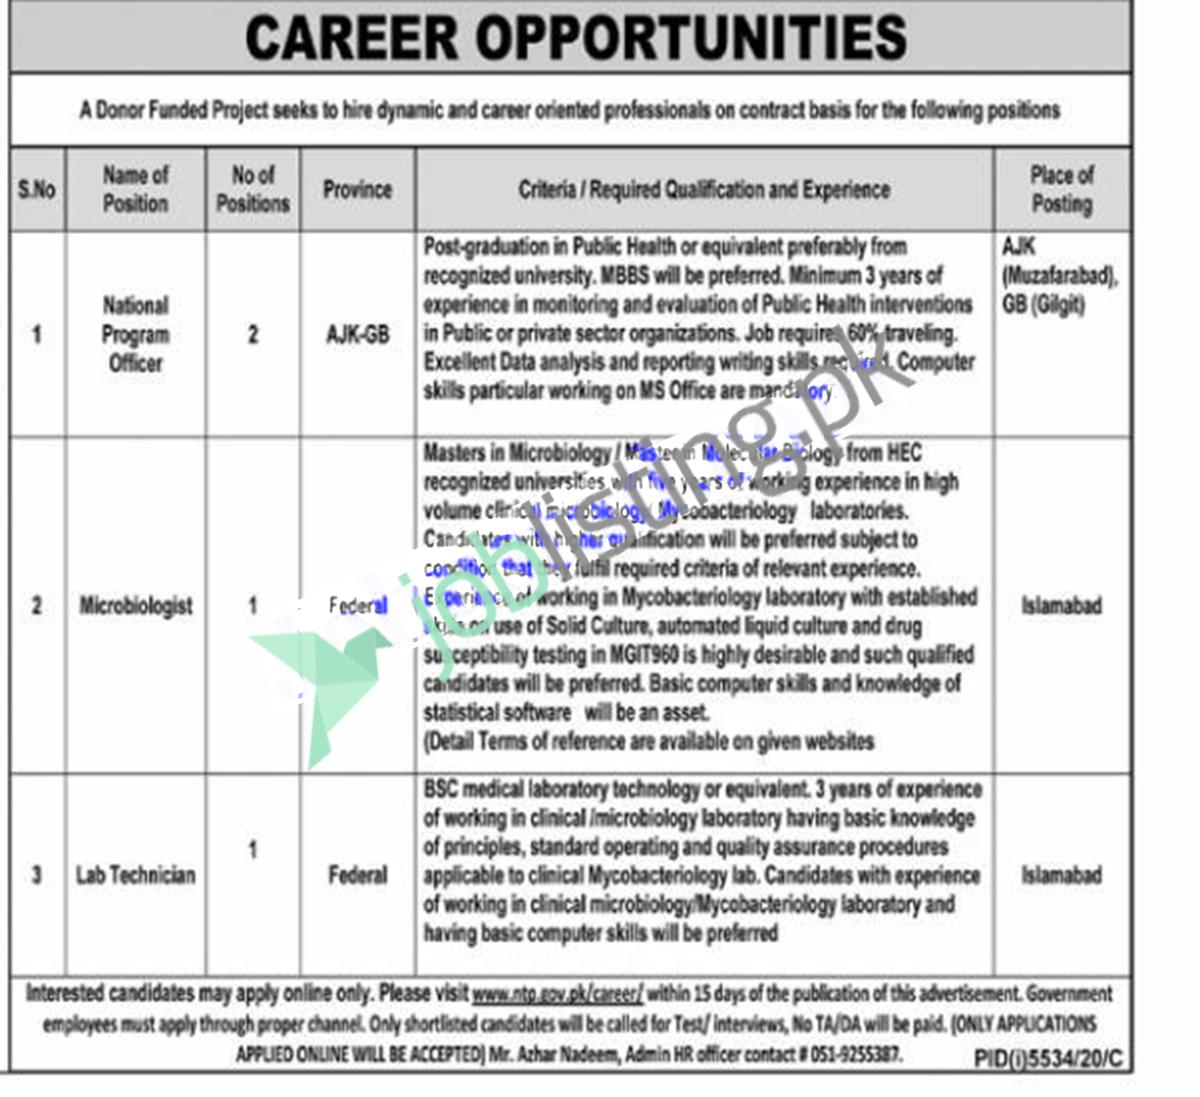 National Program Officer Position Vacant in National TB Control Program